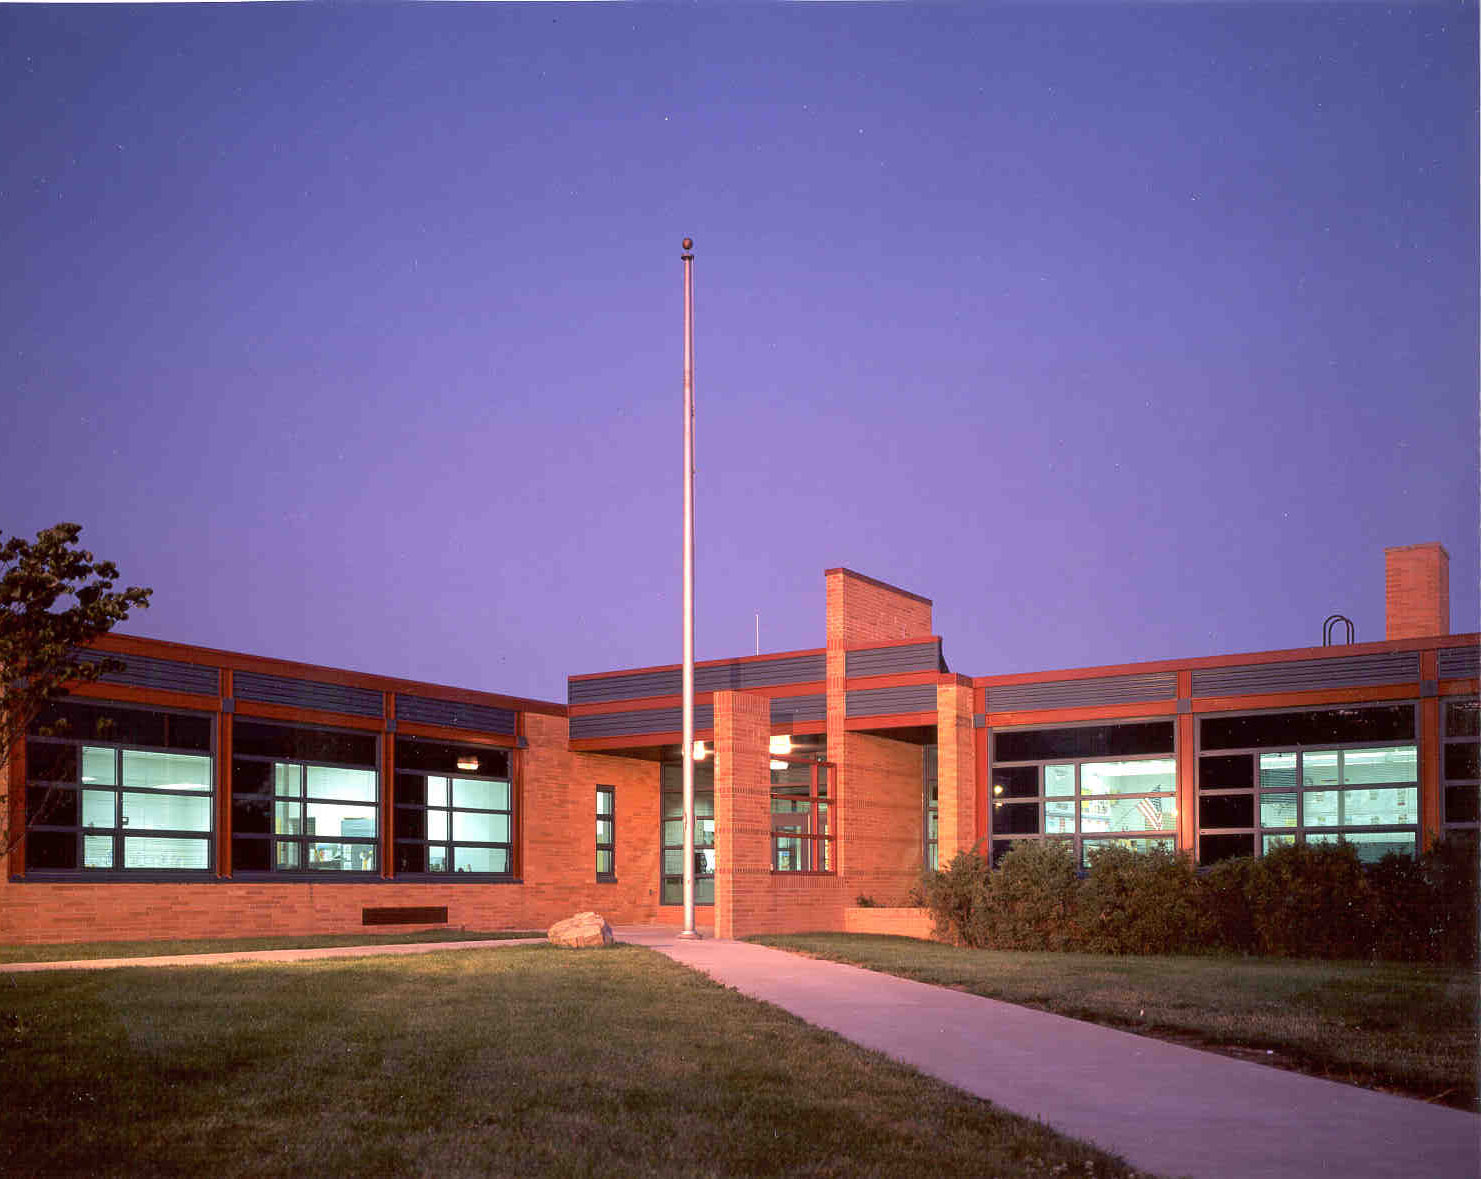 Fairview Elementary School